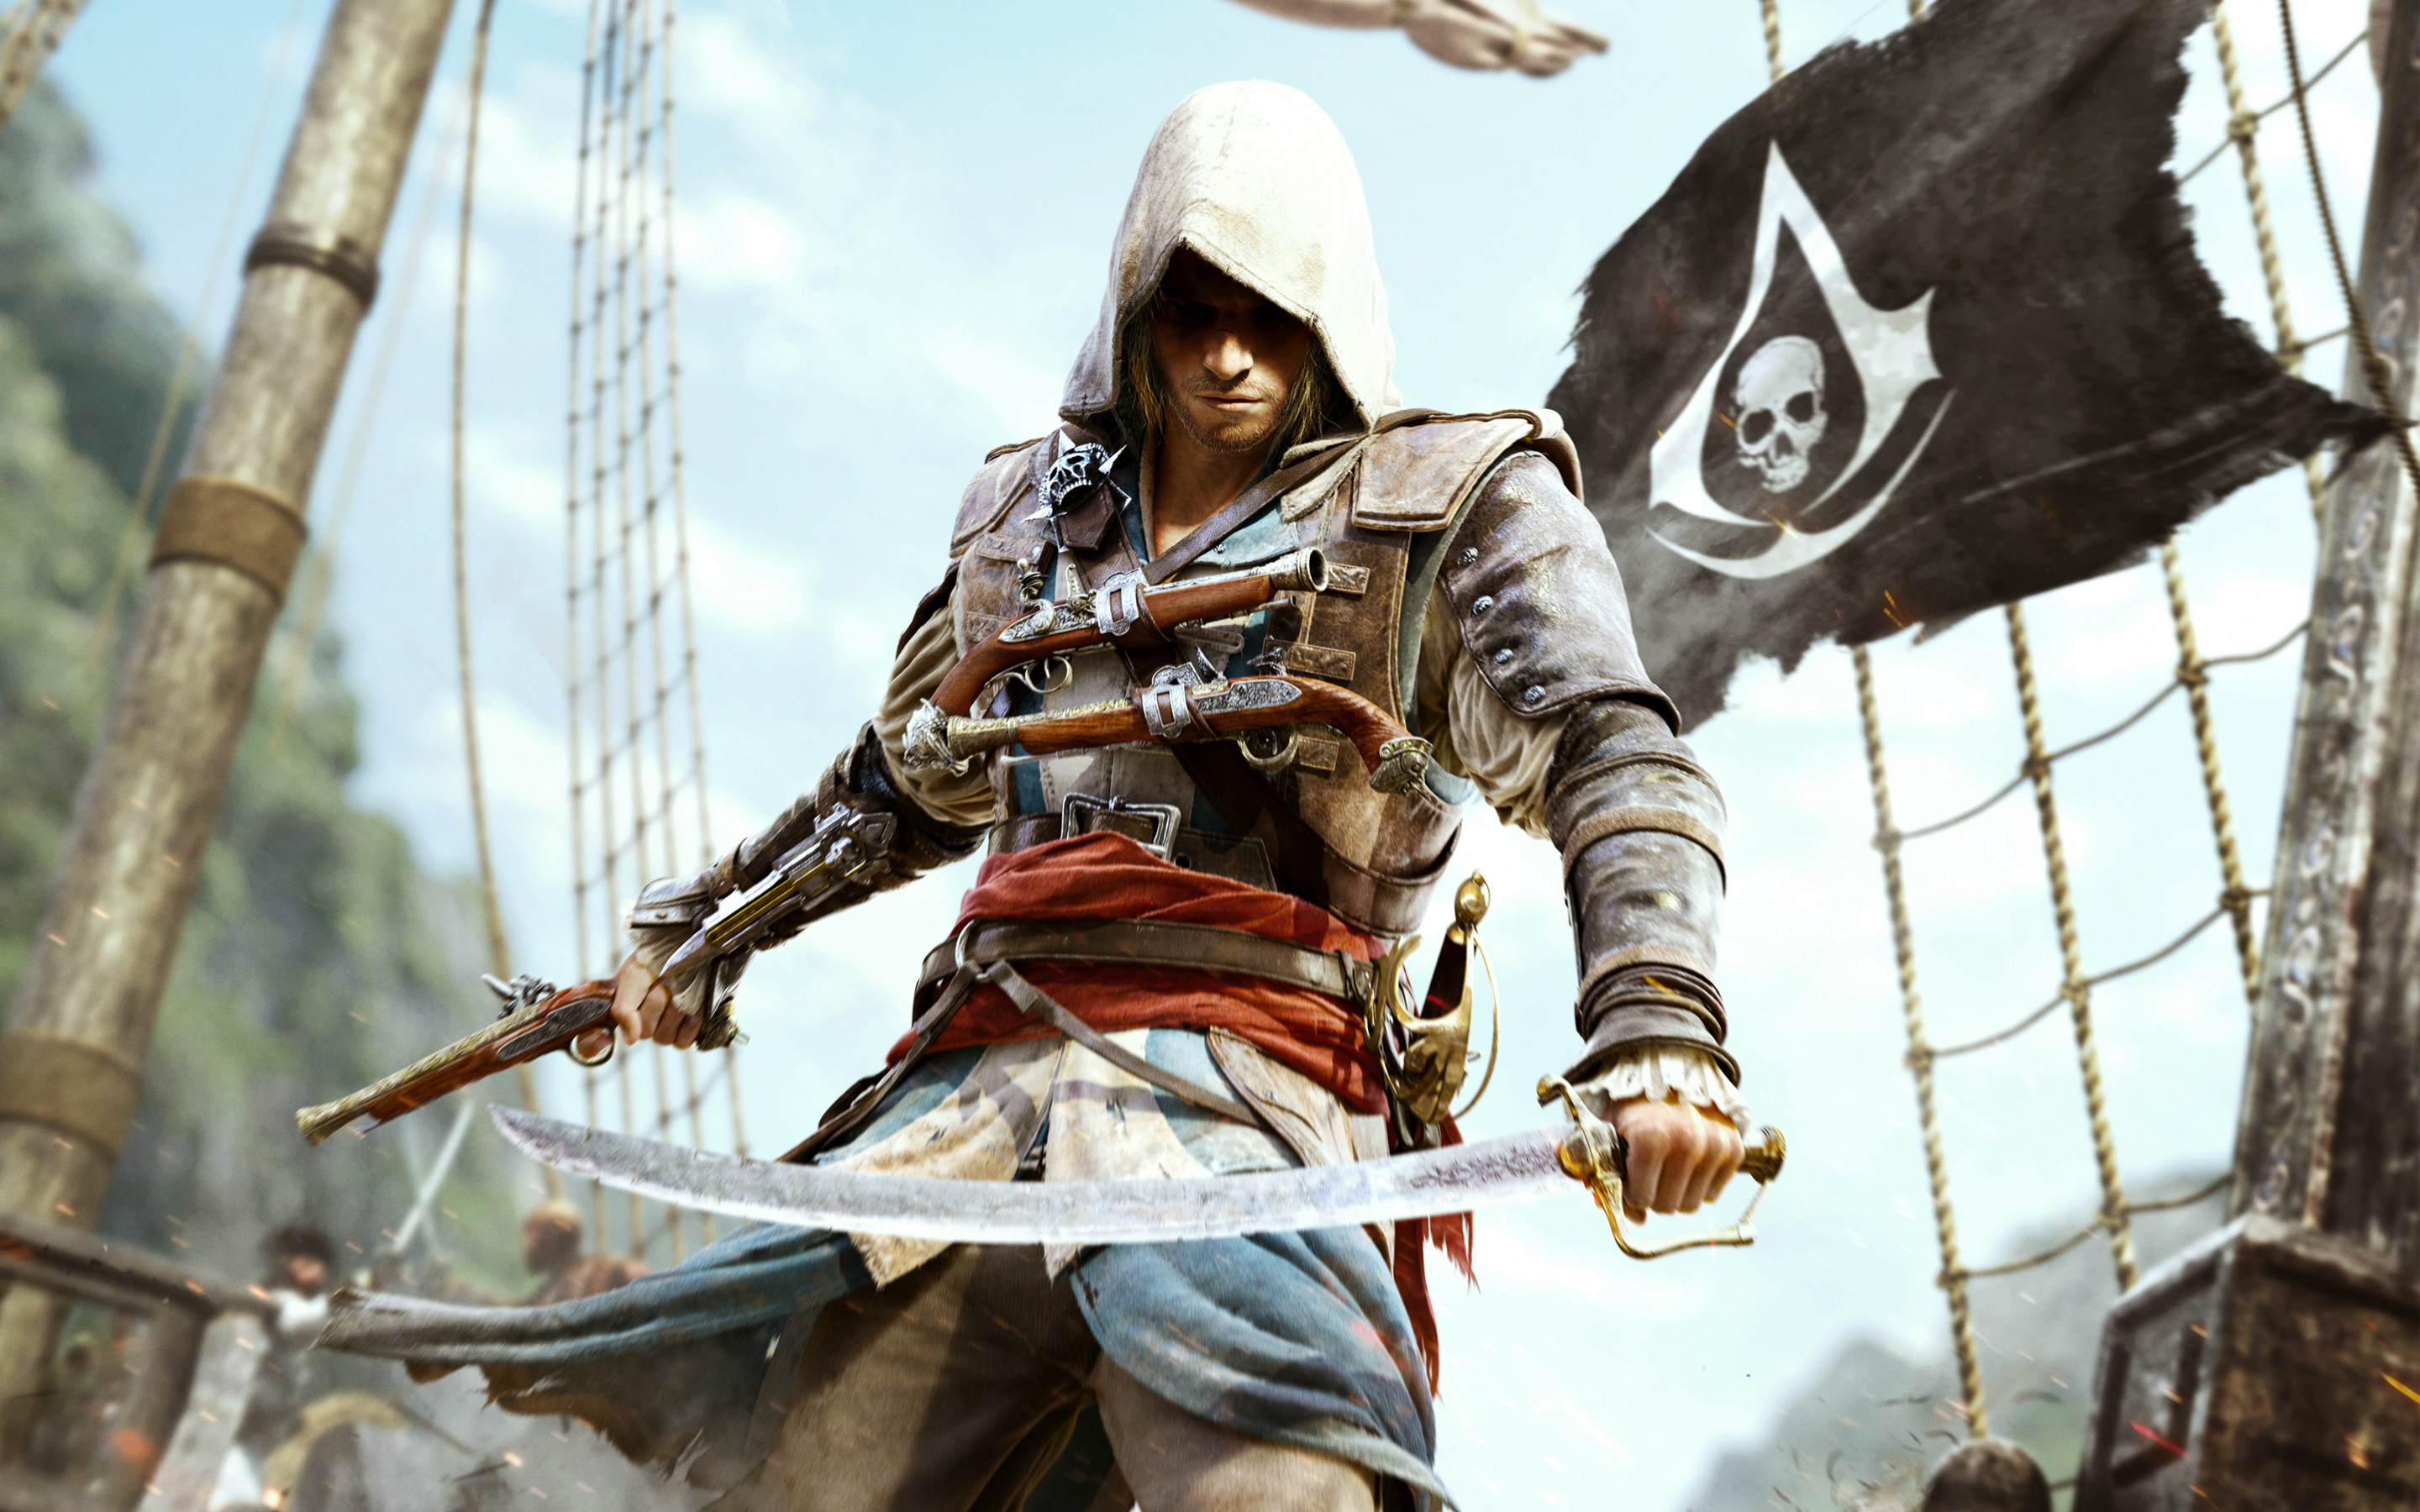 Assassins creed 4 black flag review voltagebd Gallery